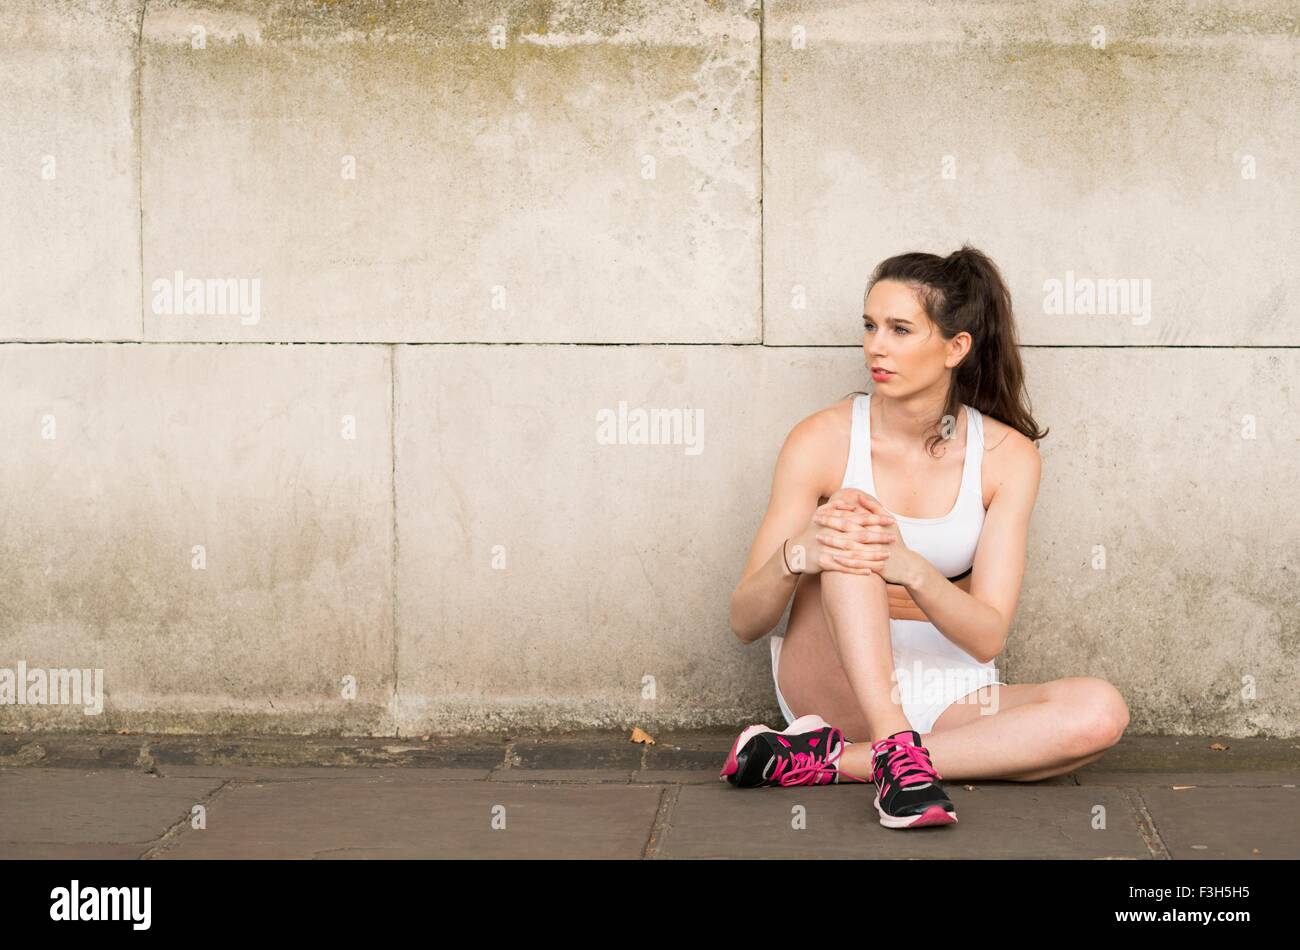 Young female runner sitting on sidewalk looking sideways - Stock Image